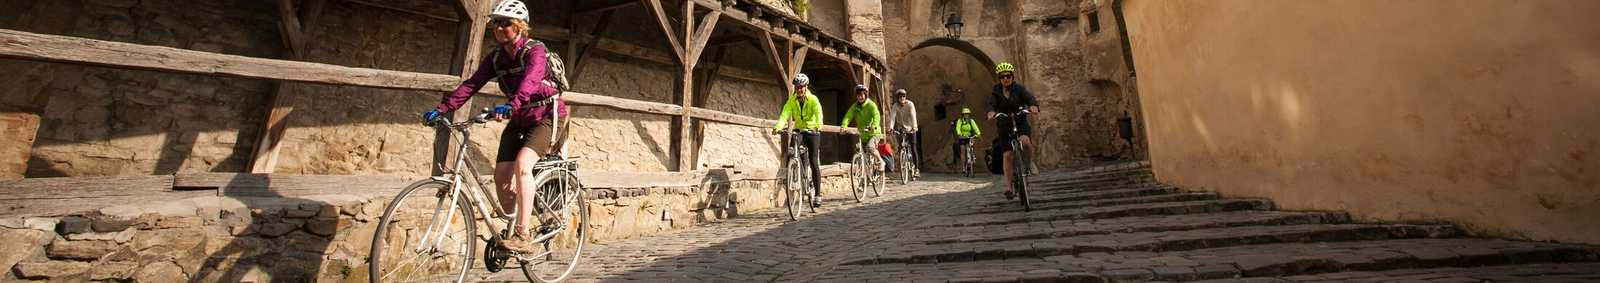 Cycling through Sighisoara